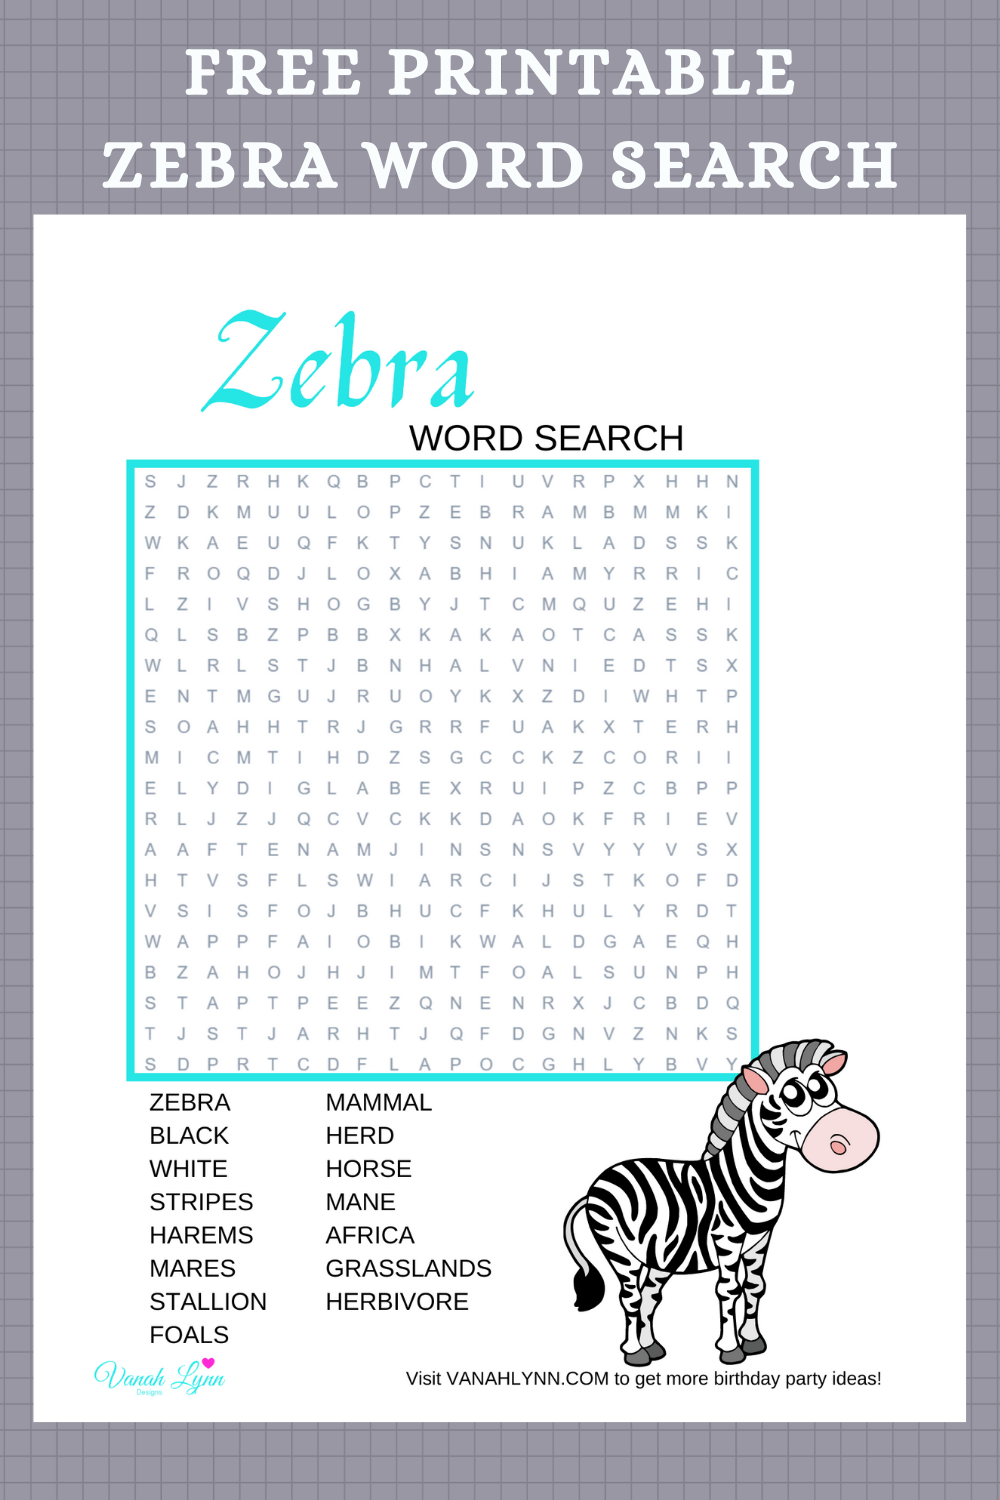 zebra activity sheet for a kids birthday party